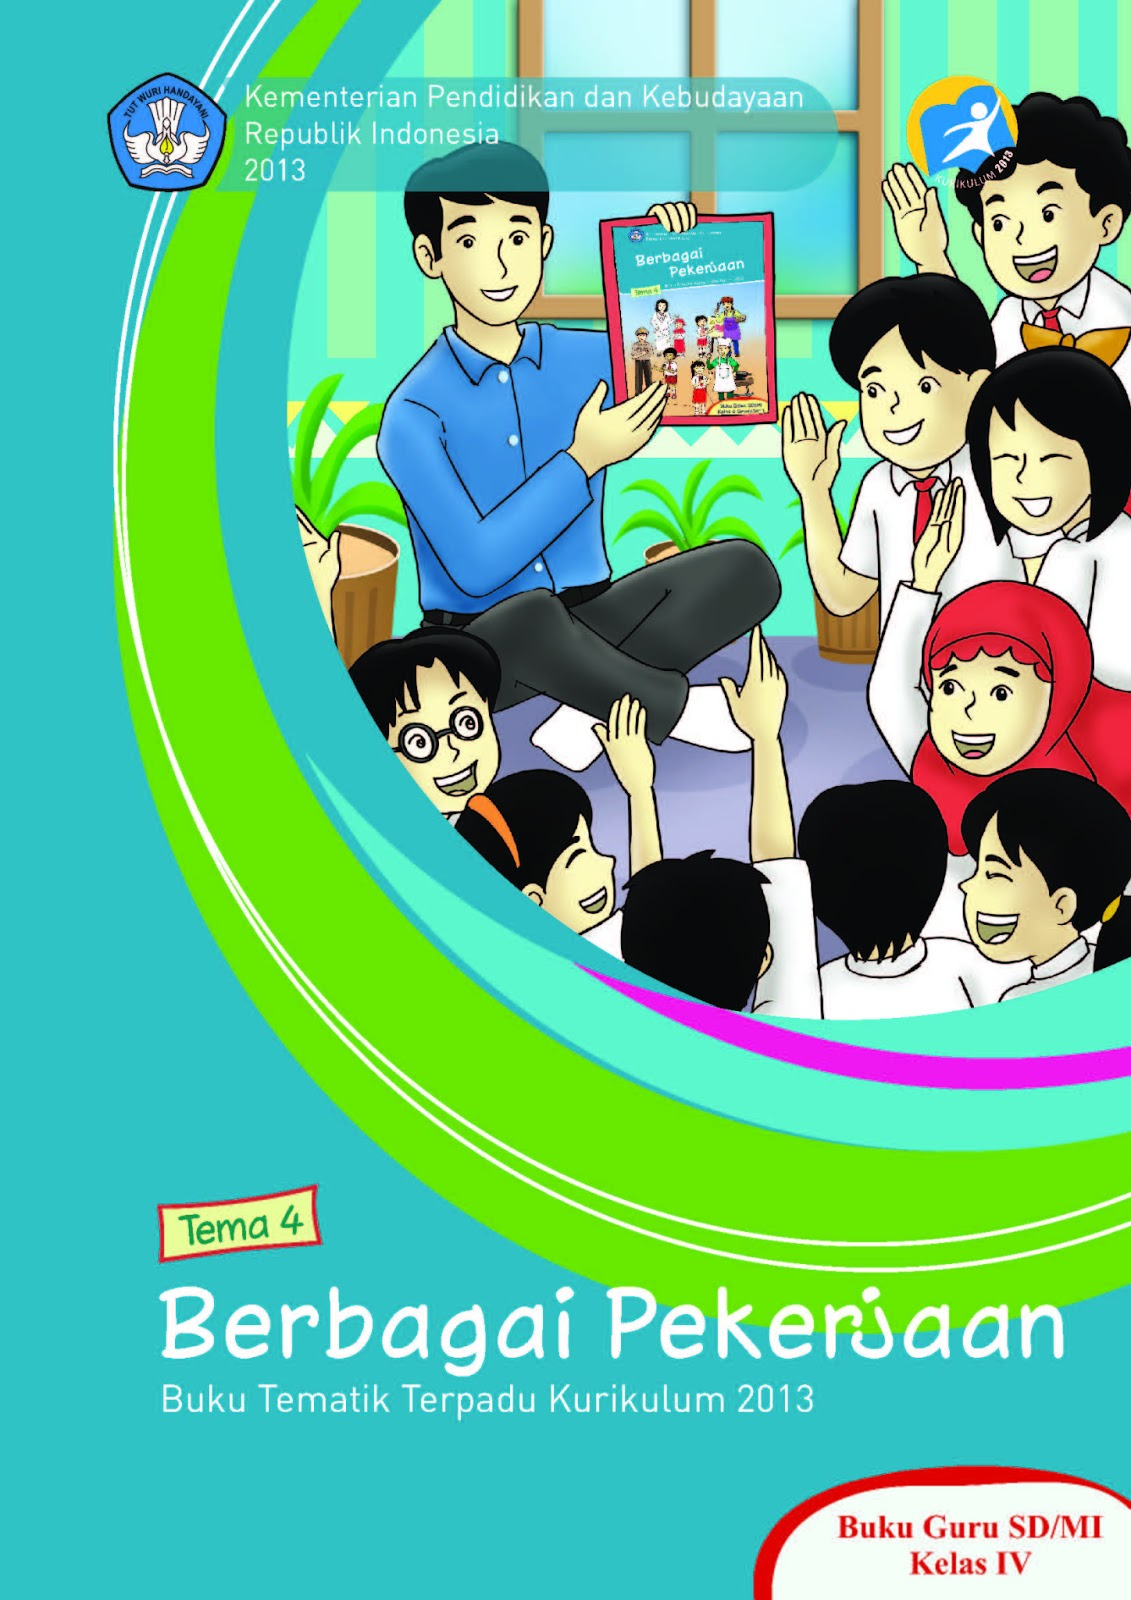 Pelajaran Agribisnis Home Ukg Online Tryout Ukg Online Uji Kompetensi Guru 1131 X 1600 Jpeg 287kb Related To Download Buku Kurikulum 2013 Edisi